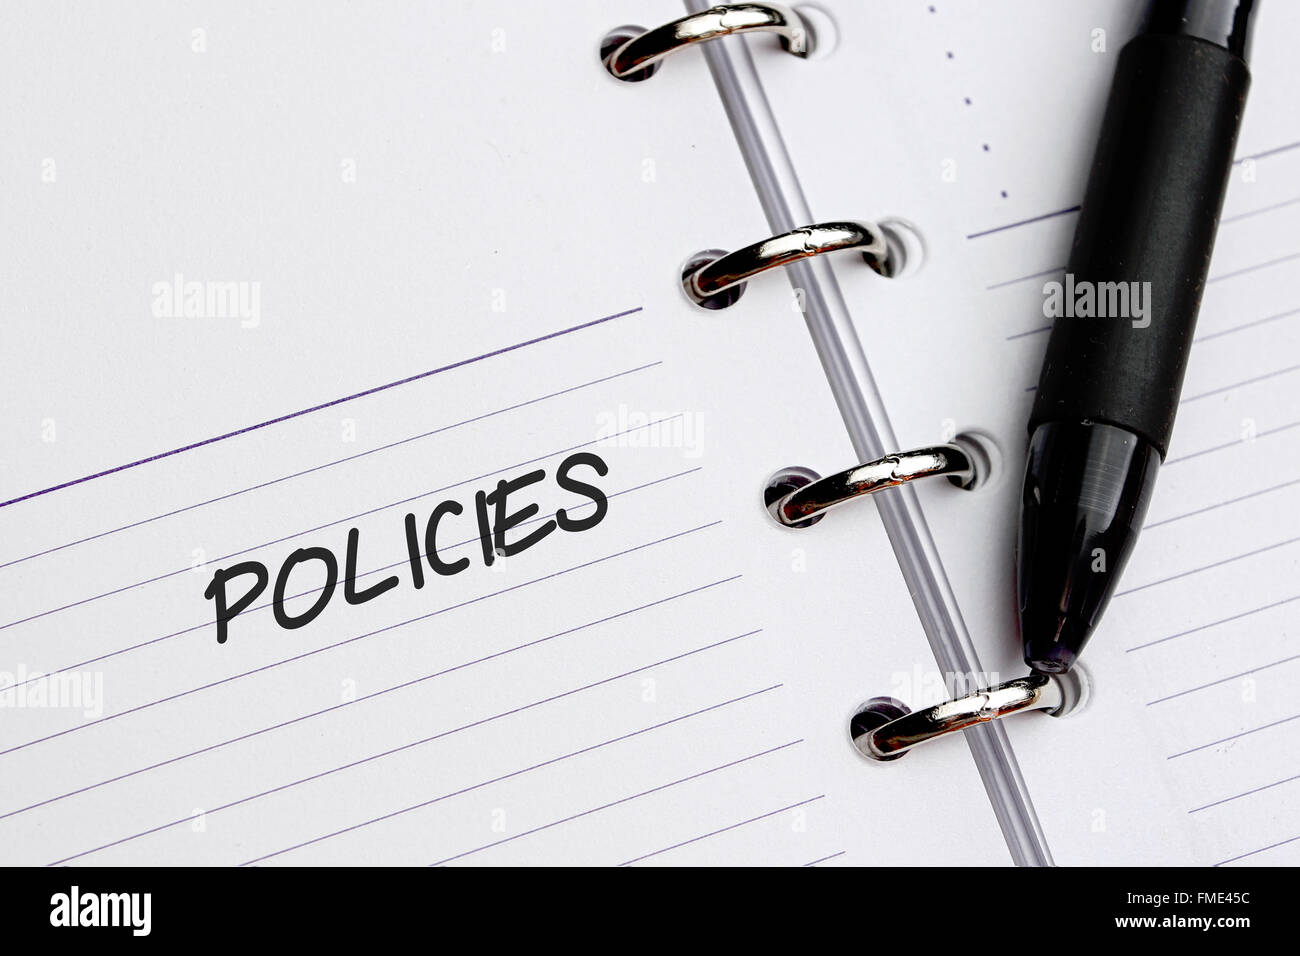 Policies word written on paper - Stock Image